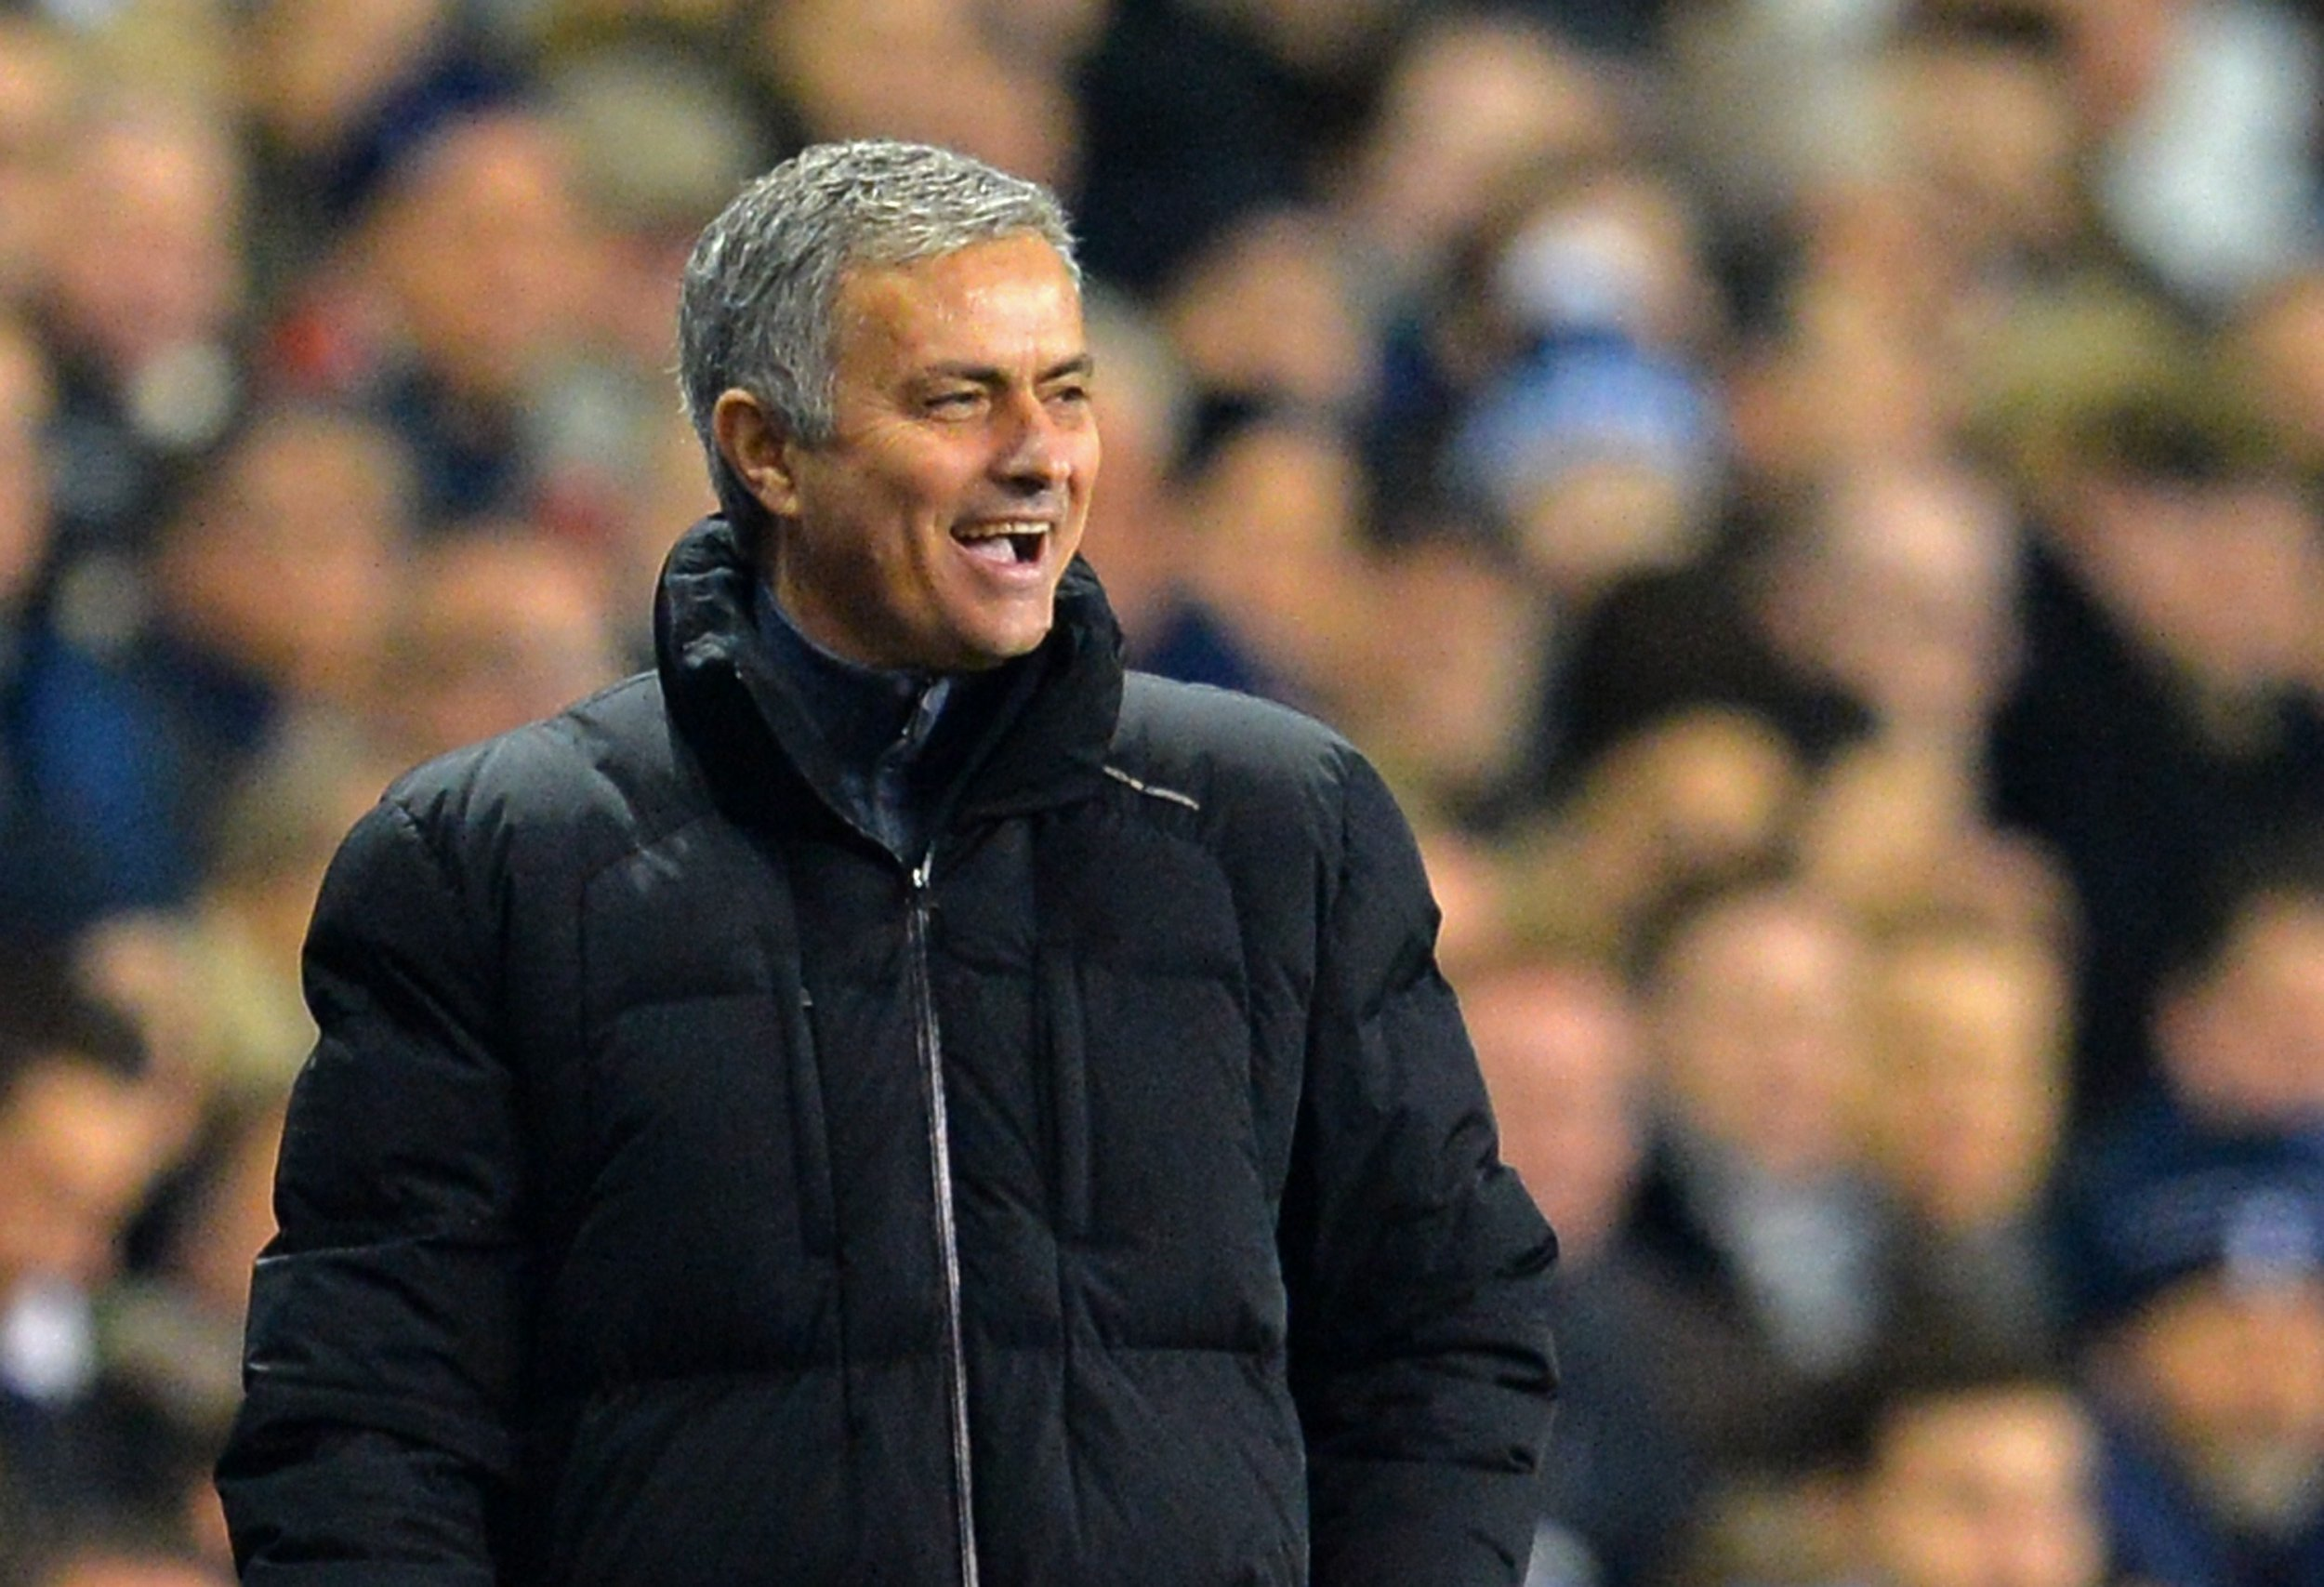 Jose Mourinho: Manchester United Boss in Paul Pogba Dig at ...